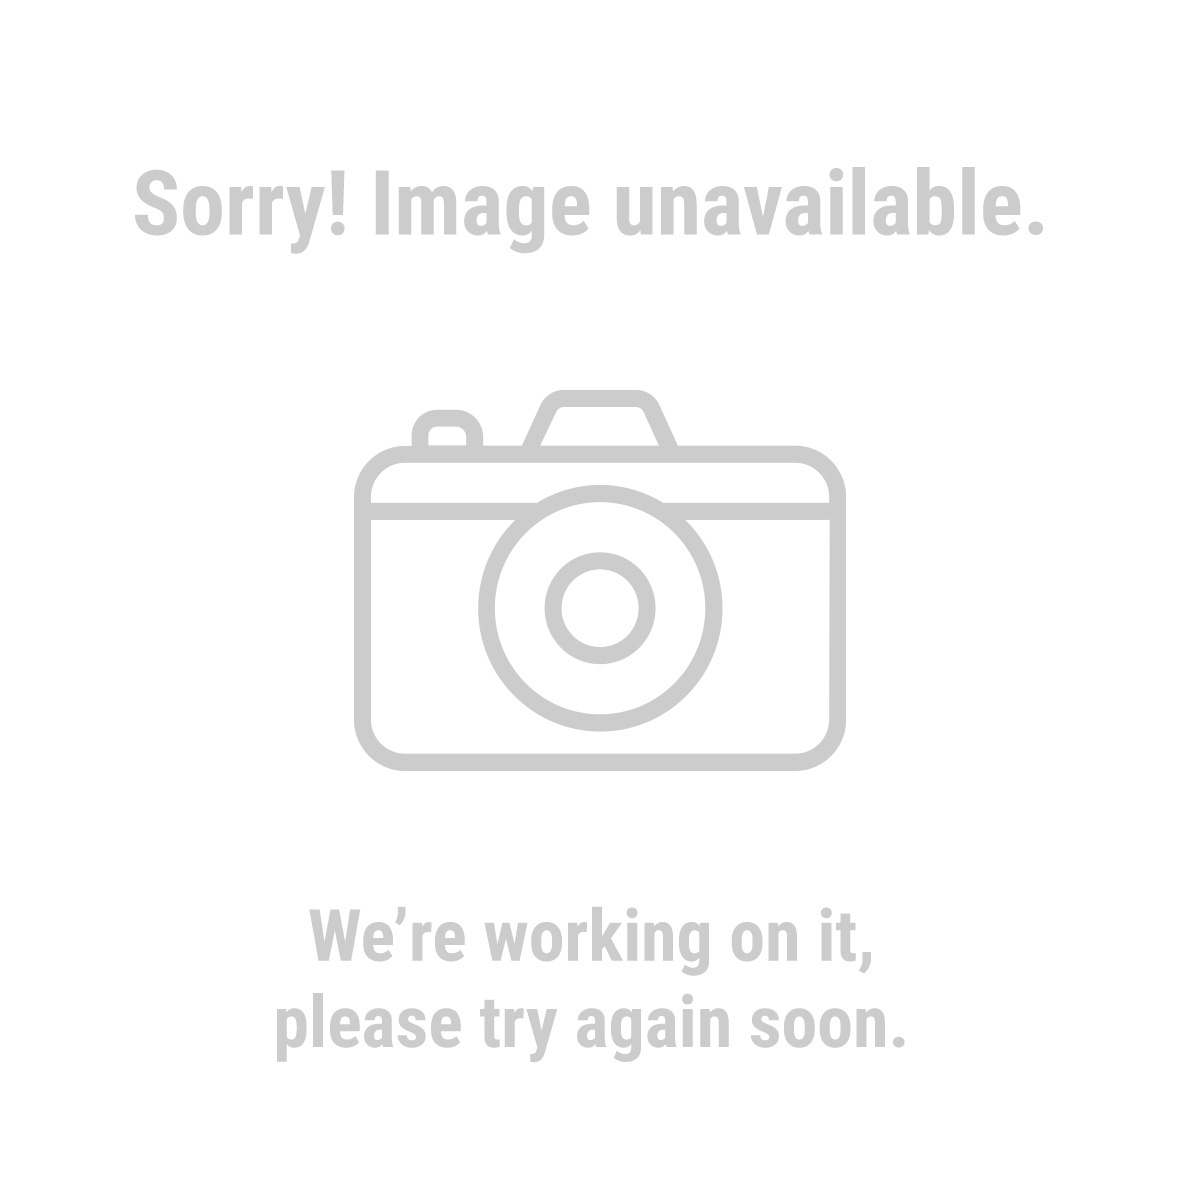 Haul-Master® 98472 1 in. x 8 ft. Camouflage Ratcheting Tie Downs 4 Pc